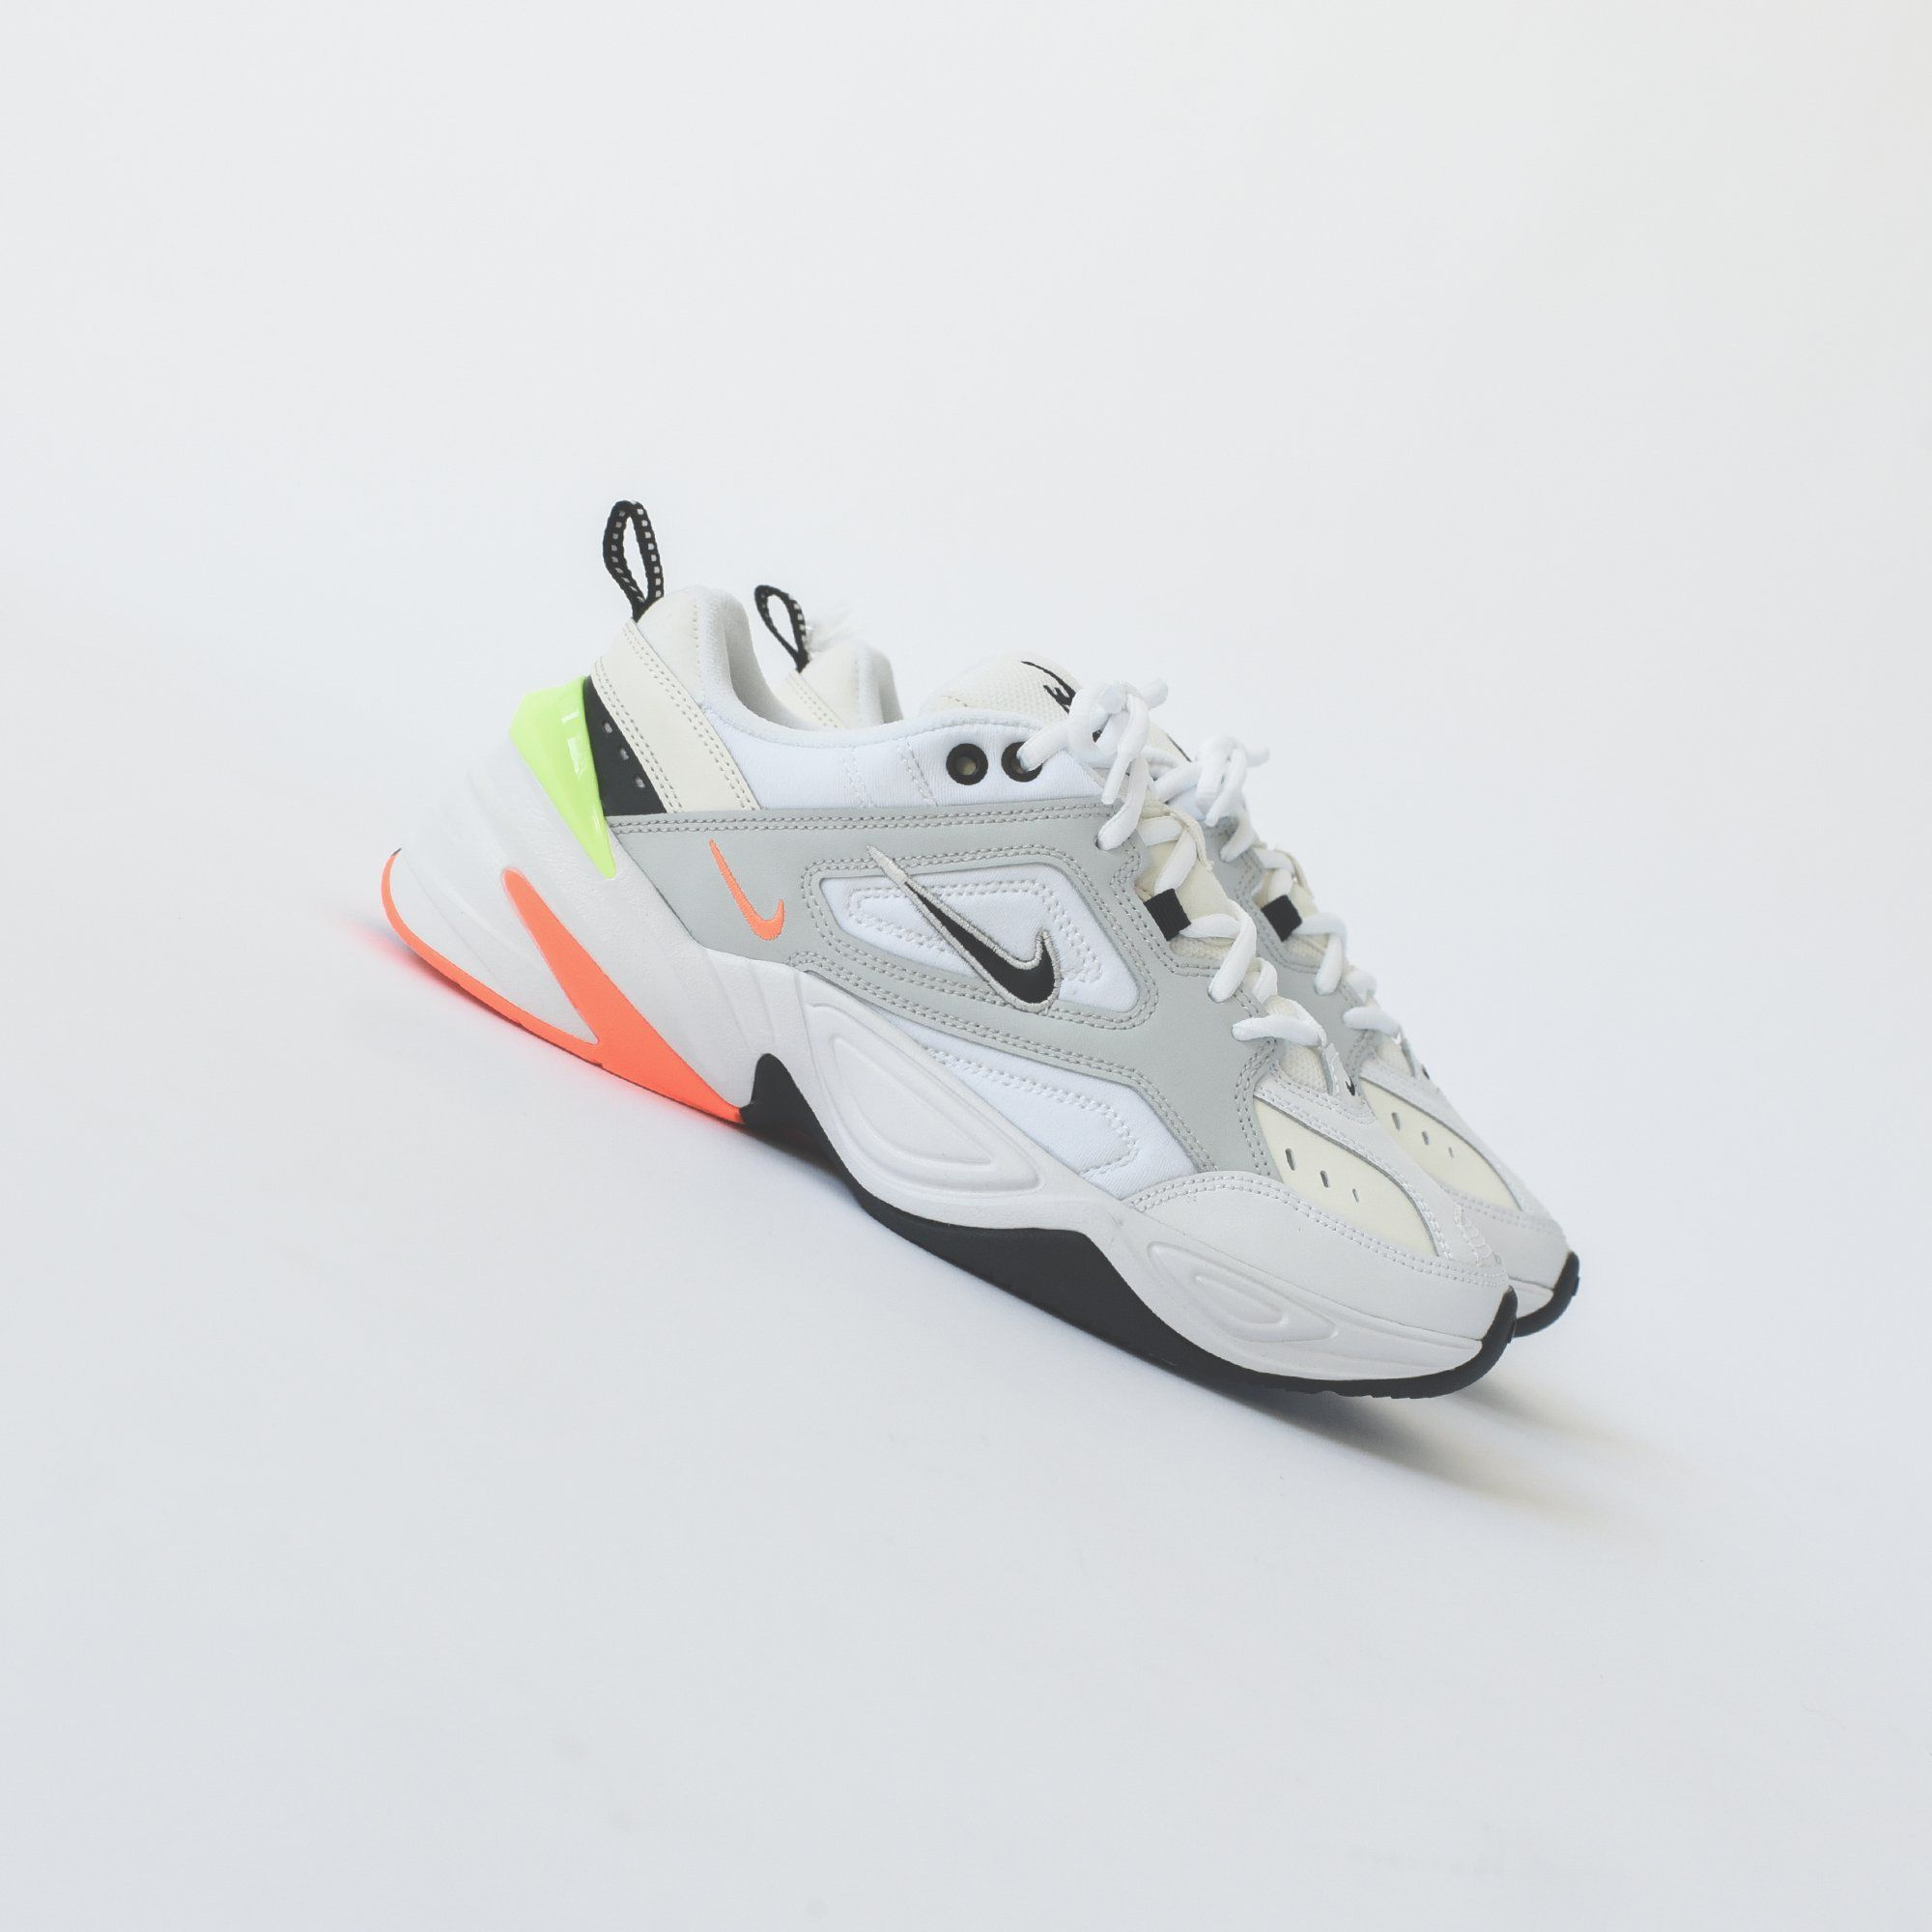 buy online 4146f 4ce0f 2018 Nike M2K Tekno Pure Platinum Black-Sail-White AV4789-004 in 2019   Nike  M2K Tekno   Nike, Sneakers nike, Shoes